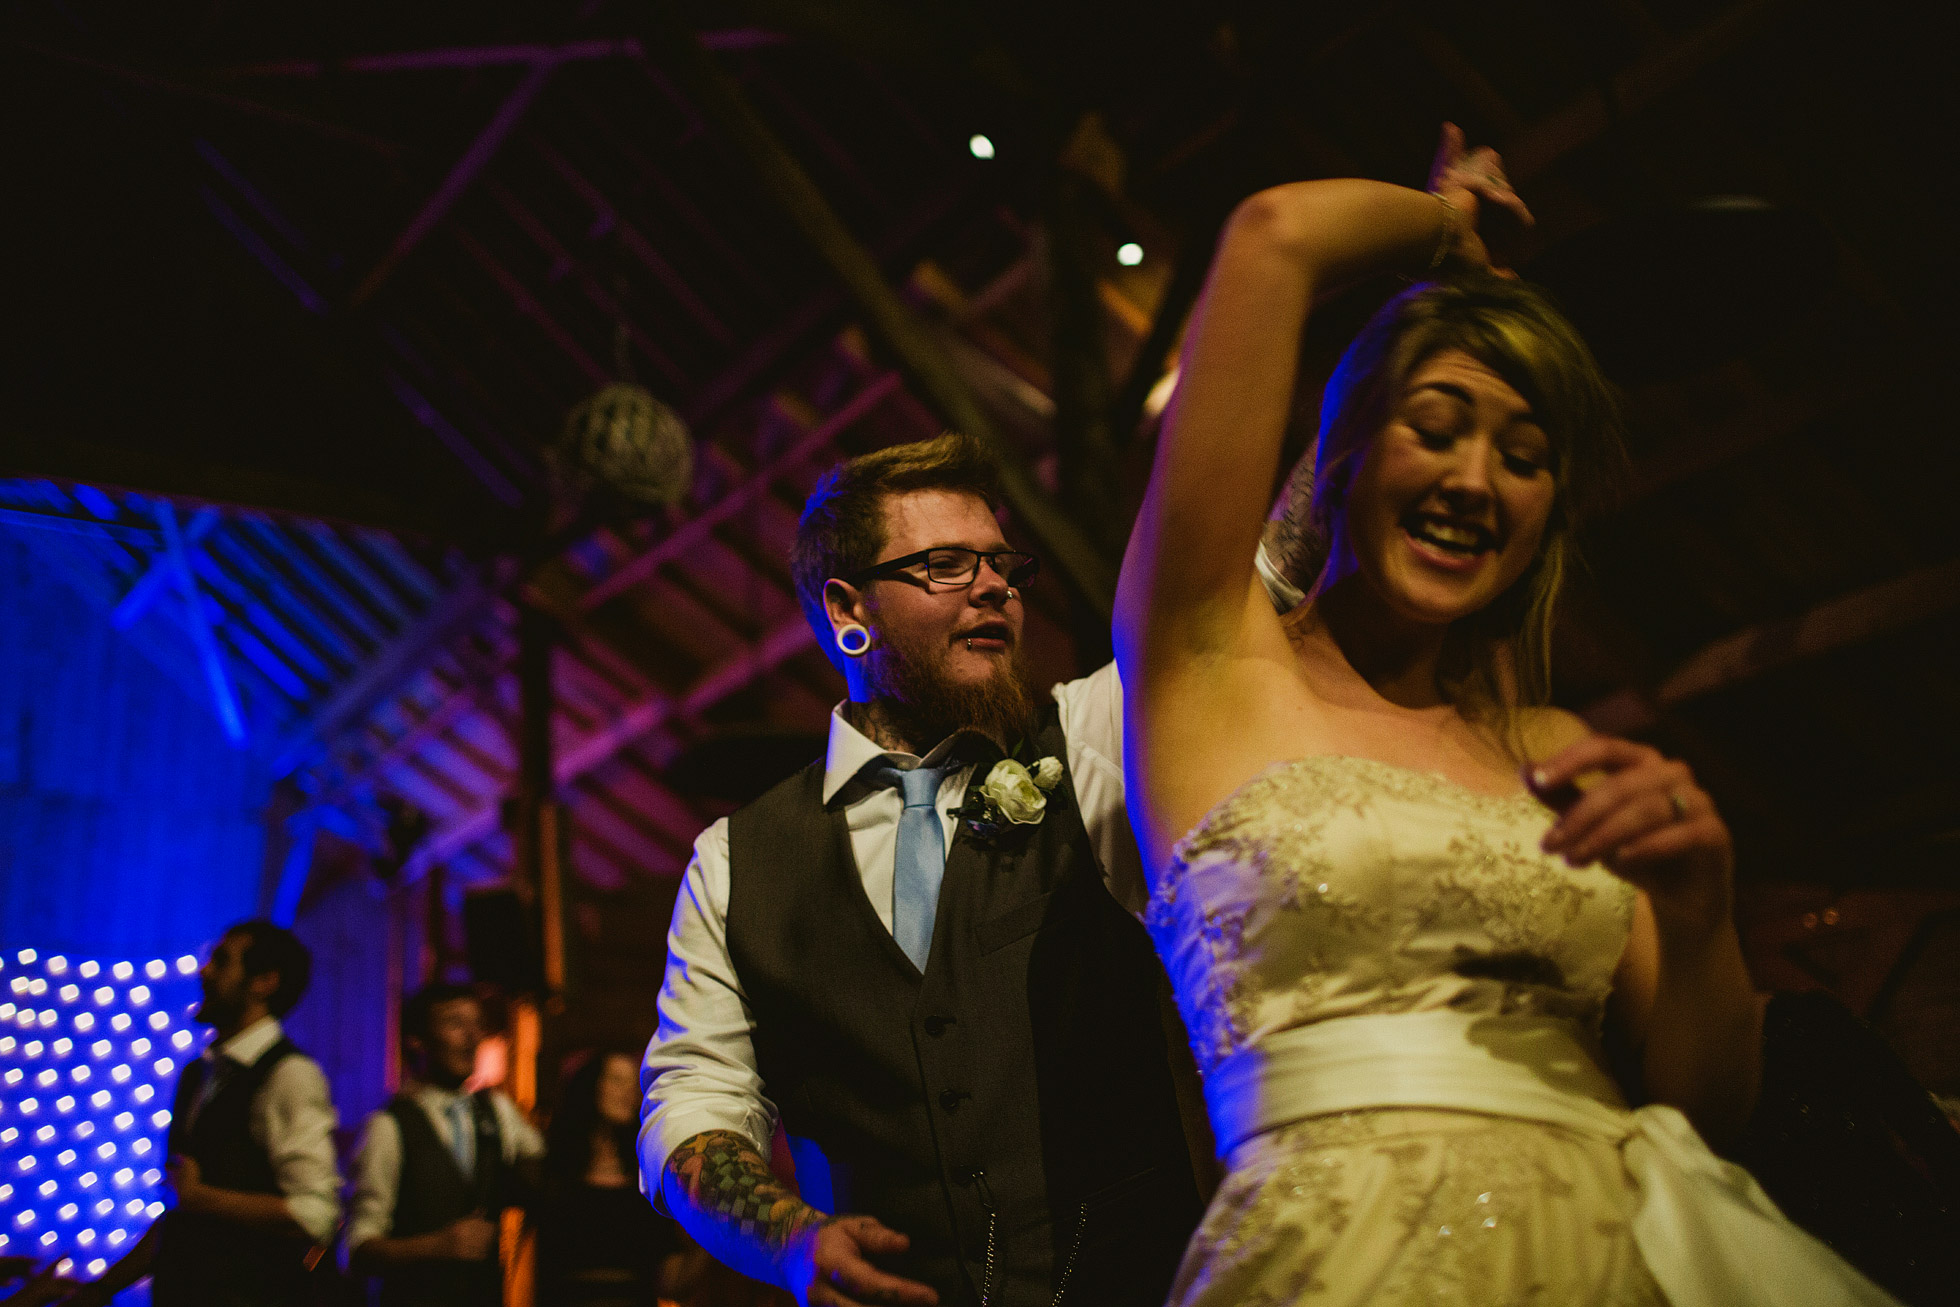 Bride and Groom Dancing at York Maze